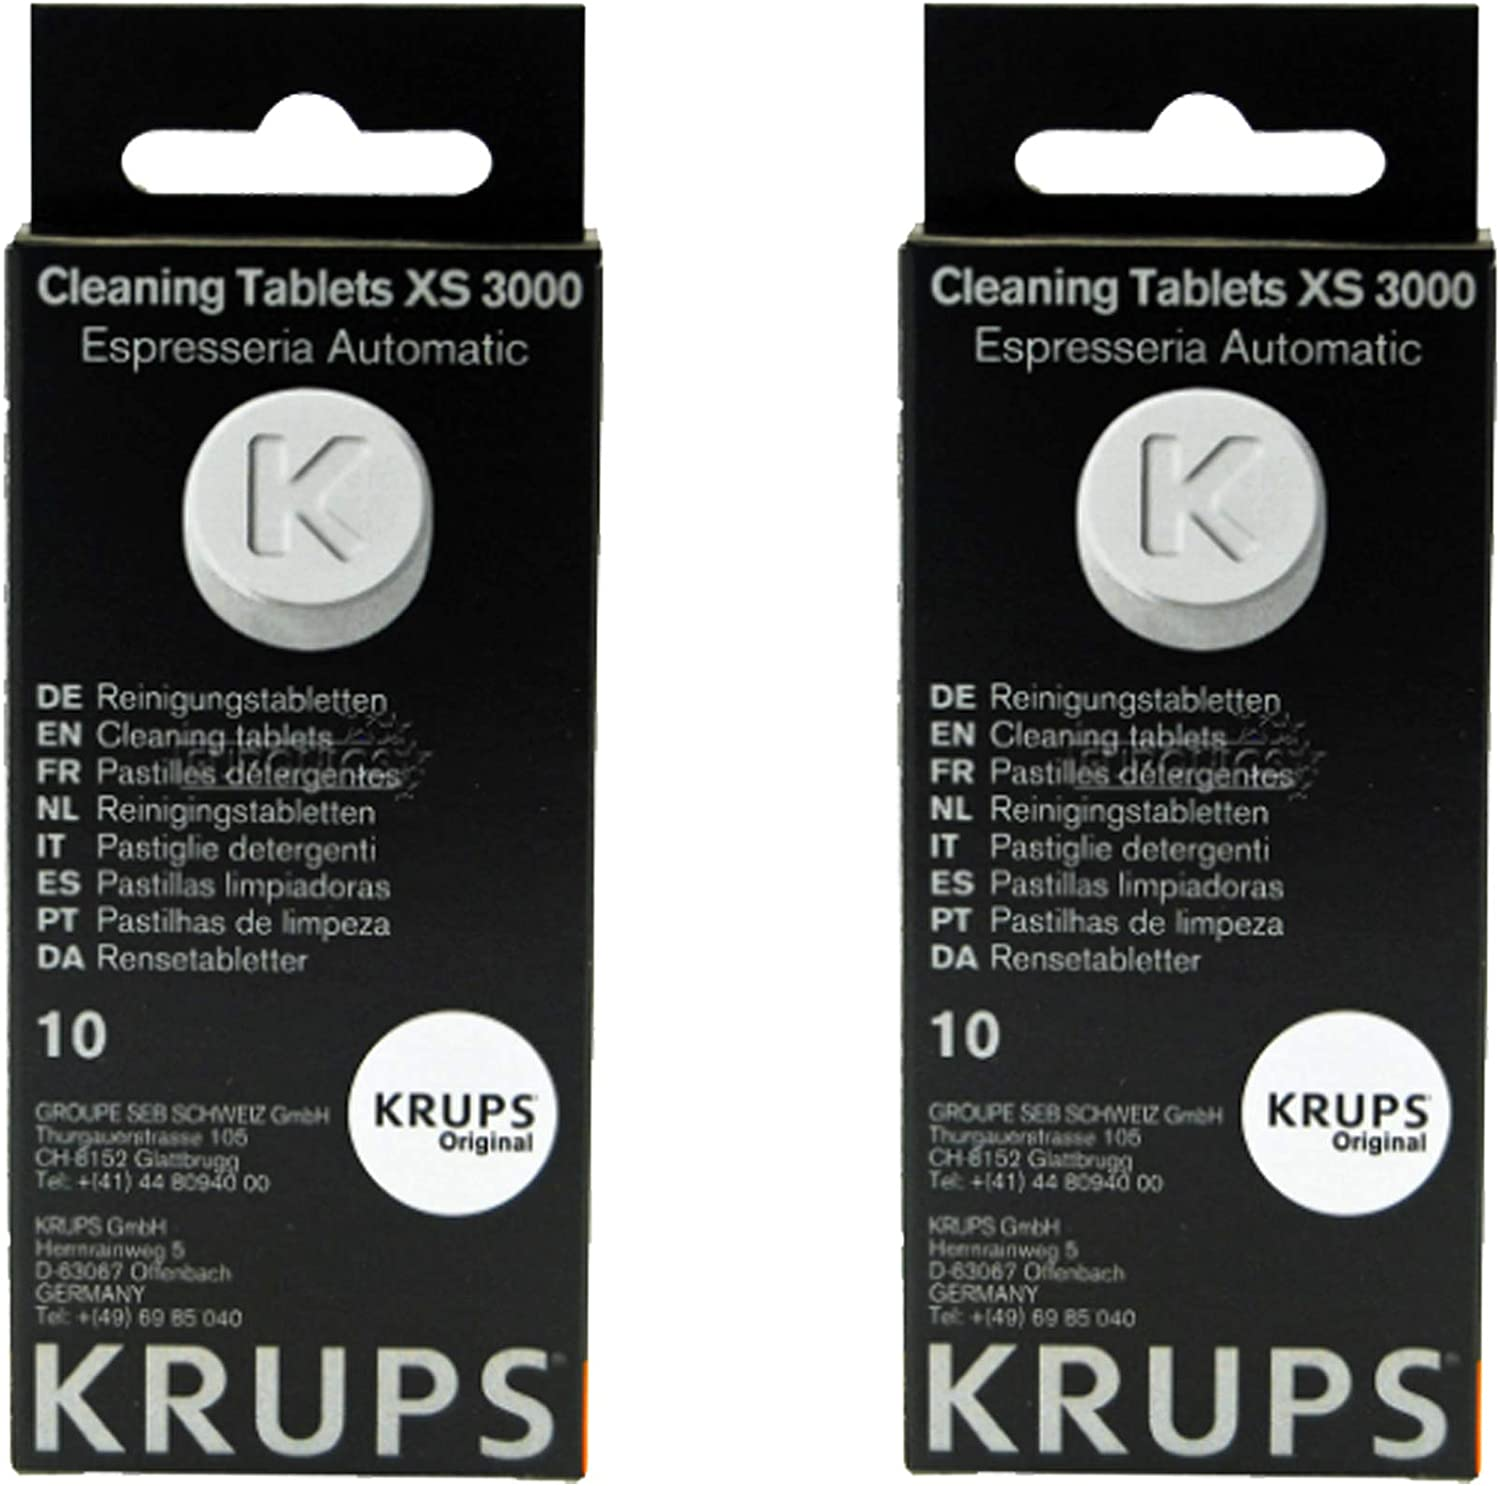 Krups XS300010 Cleaning Tablets for Espresseria Automatique Espresso Coffee Machine 1.5g x 20